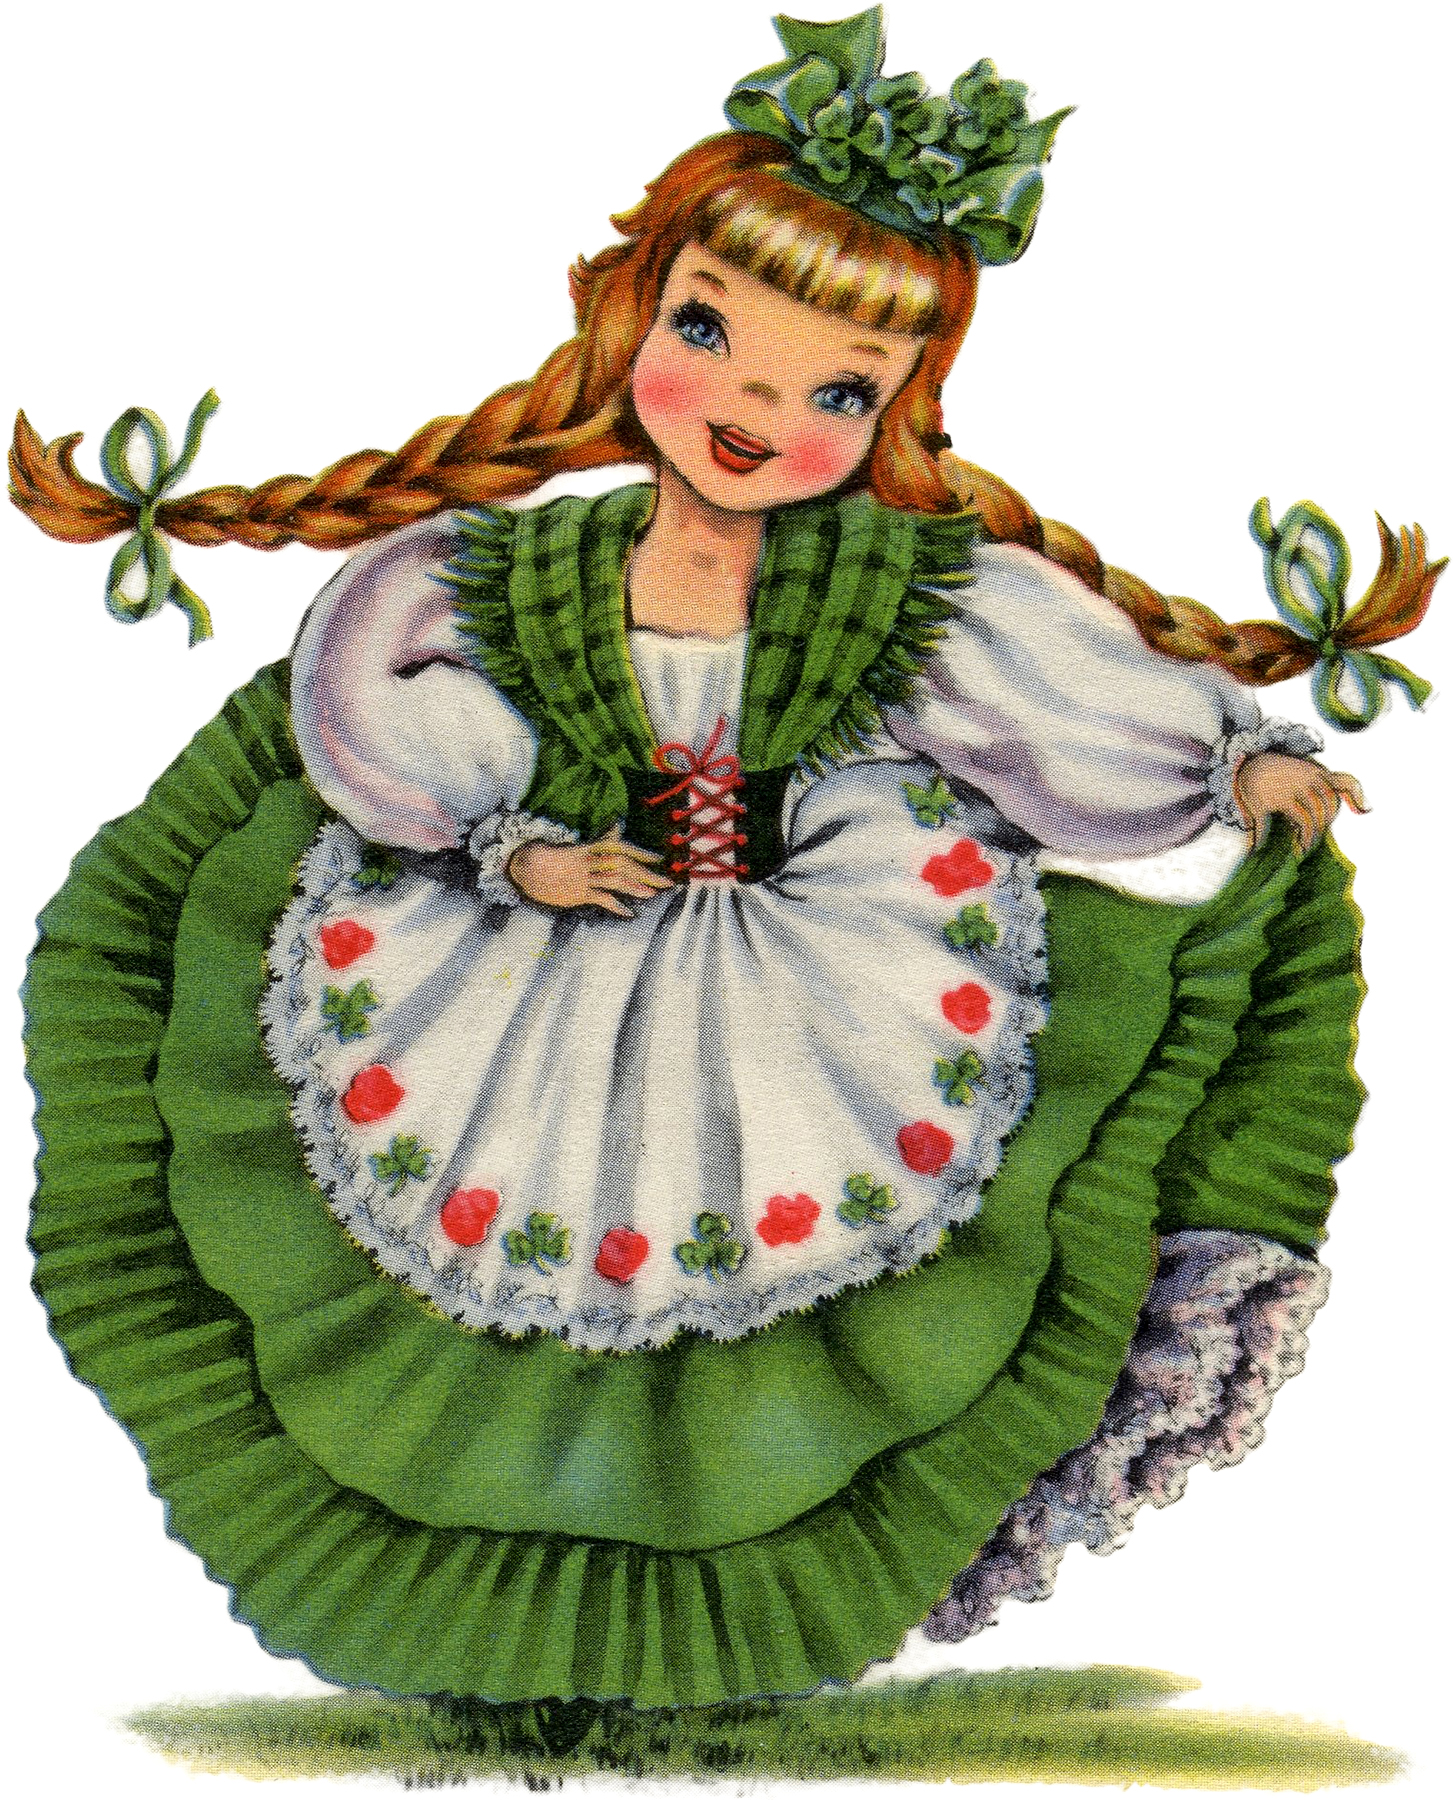 Retro Irish Doll Image St Patrick's Day Children